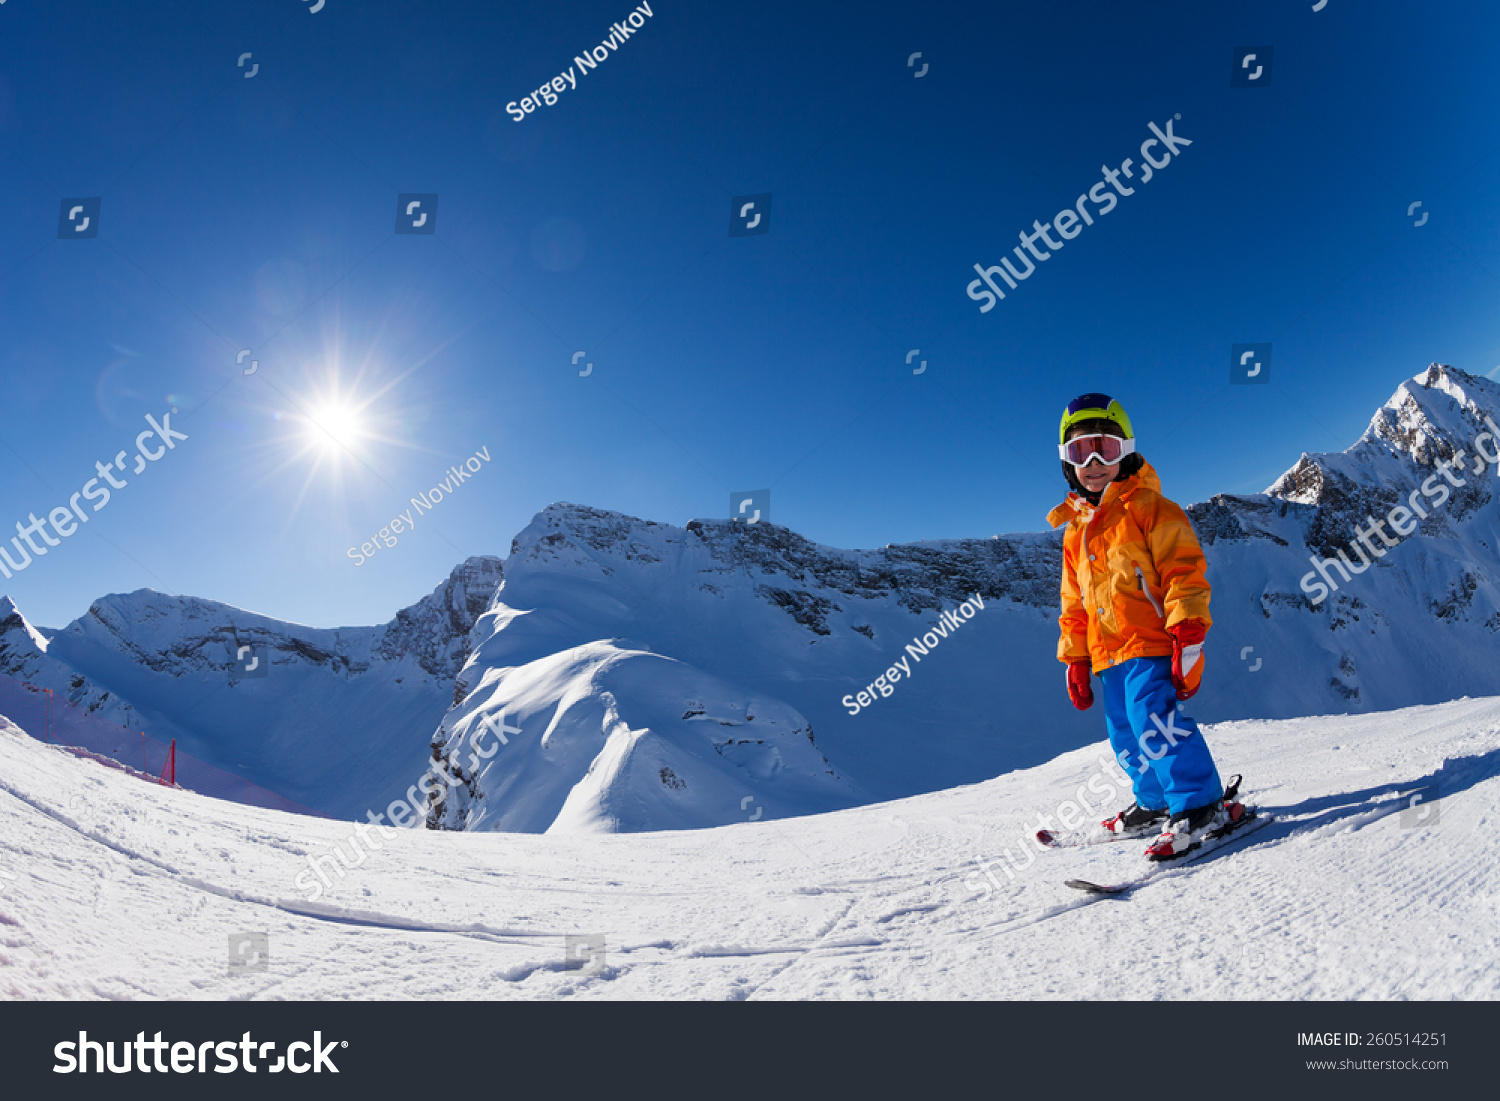 Fisheye view of boy skiing on mountain slope #260514251